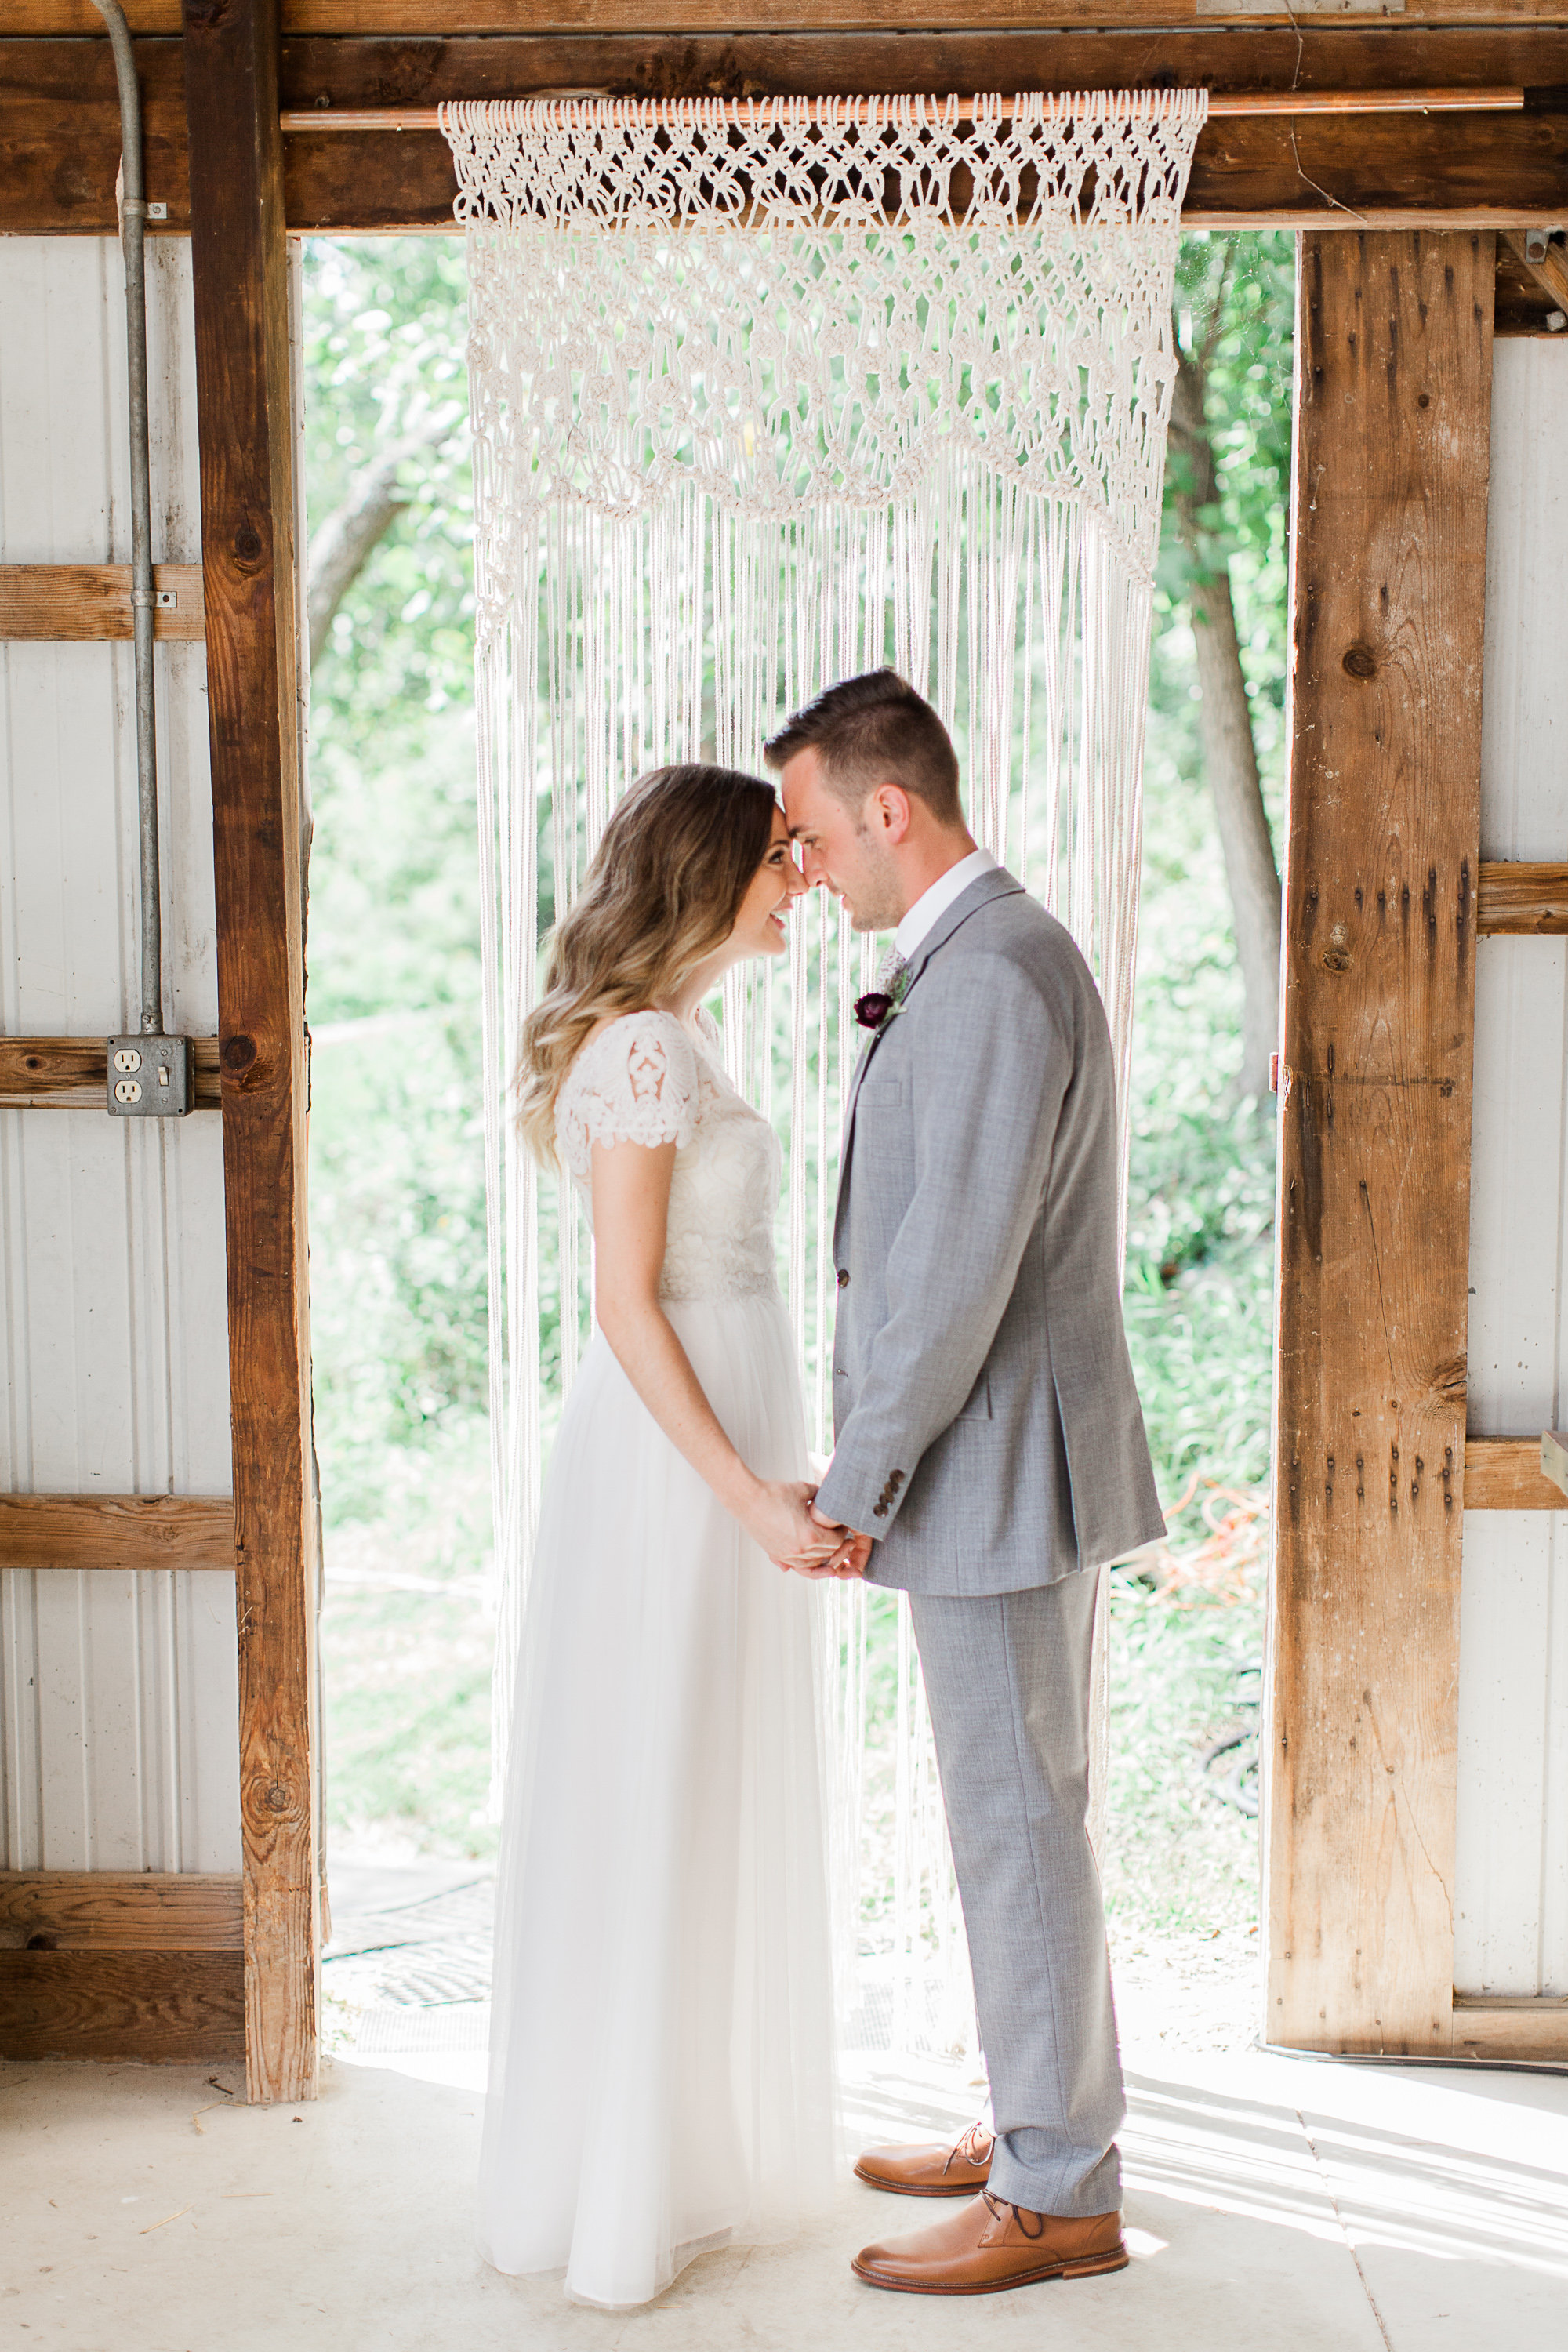 View More: http://jennyhaas.pass.us/allieandnick